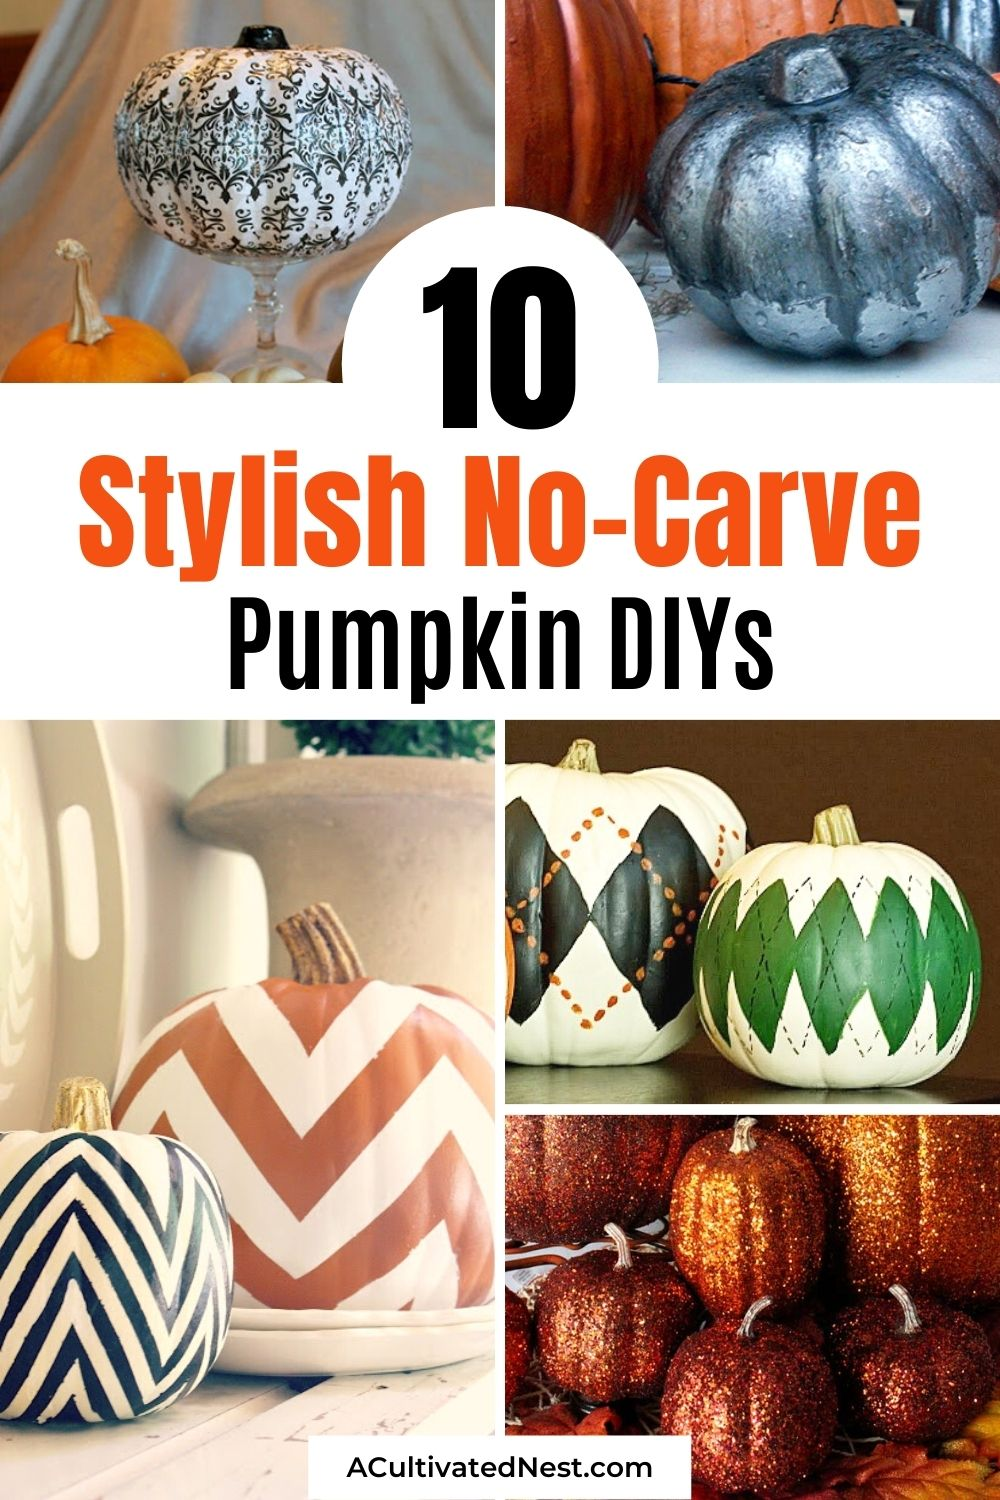 10 Stylish No Carve Pumpkin Decorating Ideas- A budget-friendly and mess-free way to decorate your home for fall, is with these 10 stylish no carve pumpkin decorating ideas! They're so fun to make, and look beautiful!   #pumpkinCraft #fallPumpkins #craft #diyProjects #ACultivatedNest